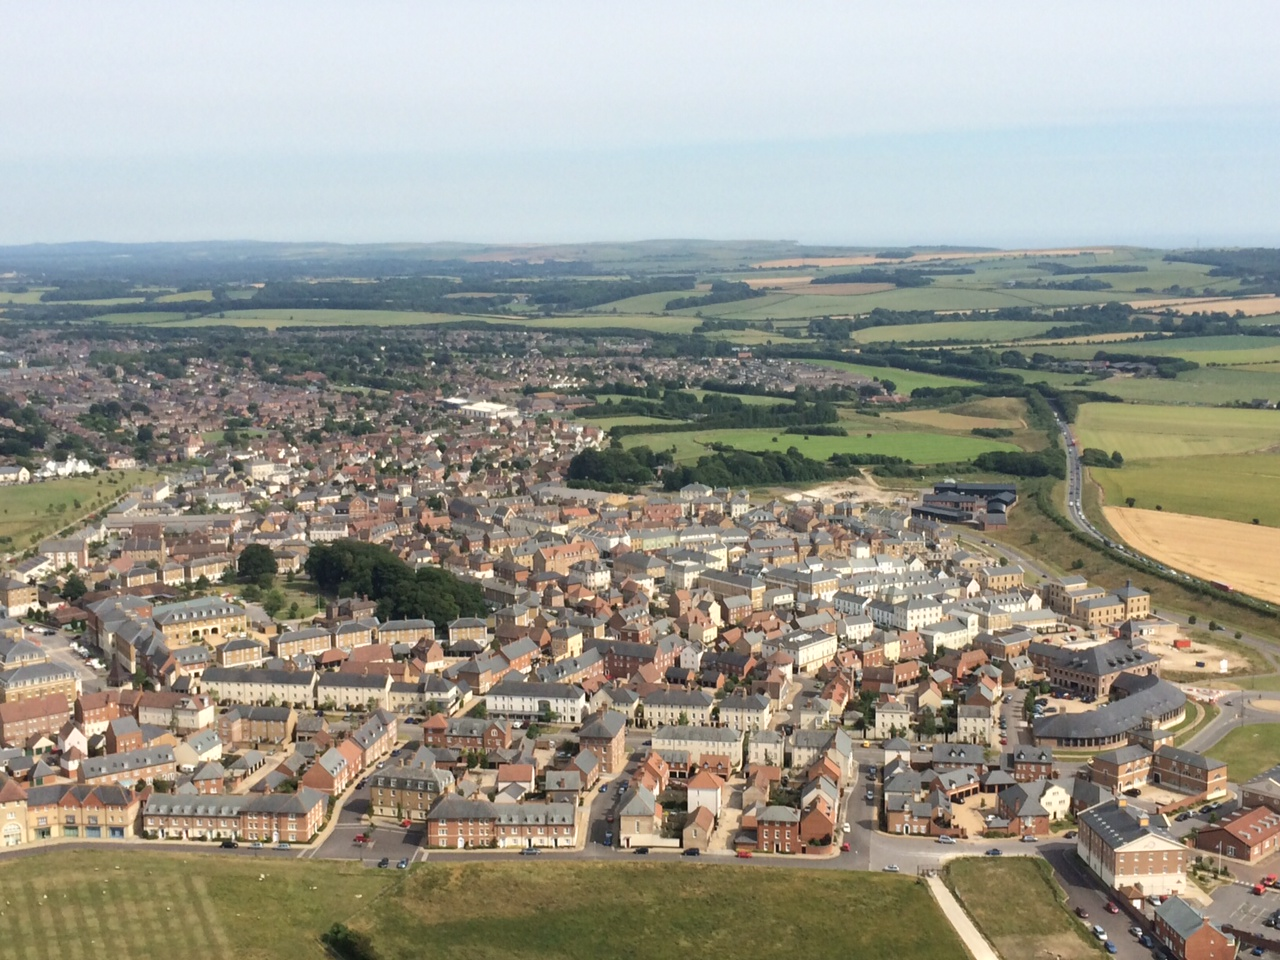 Aerial view of the new town of Poundbury, Dorset, UK